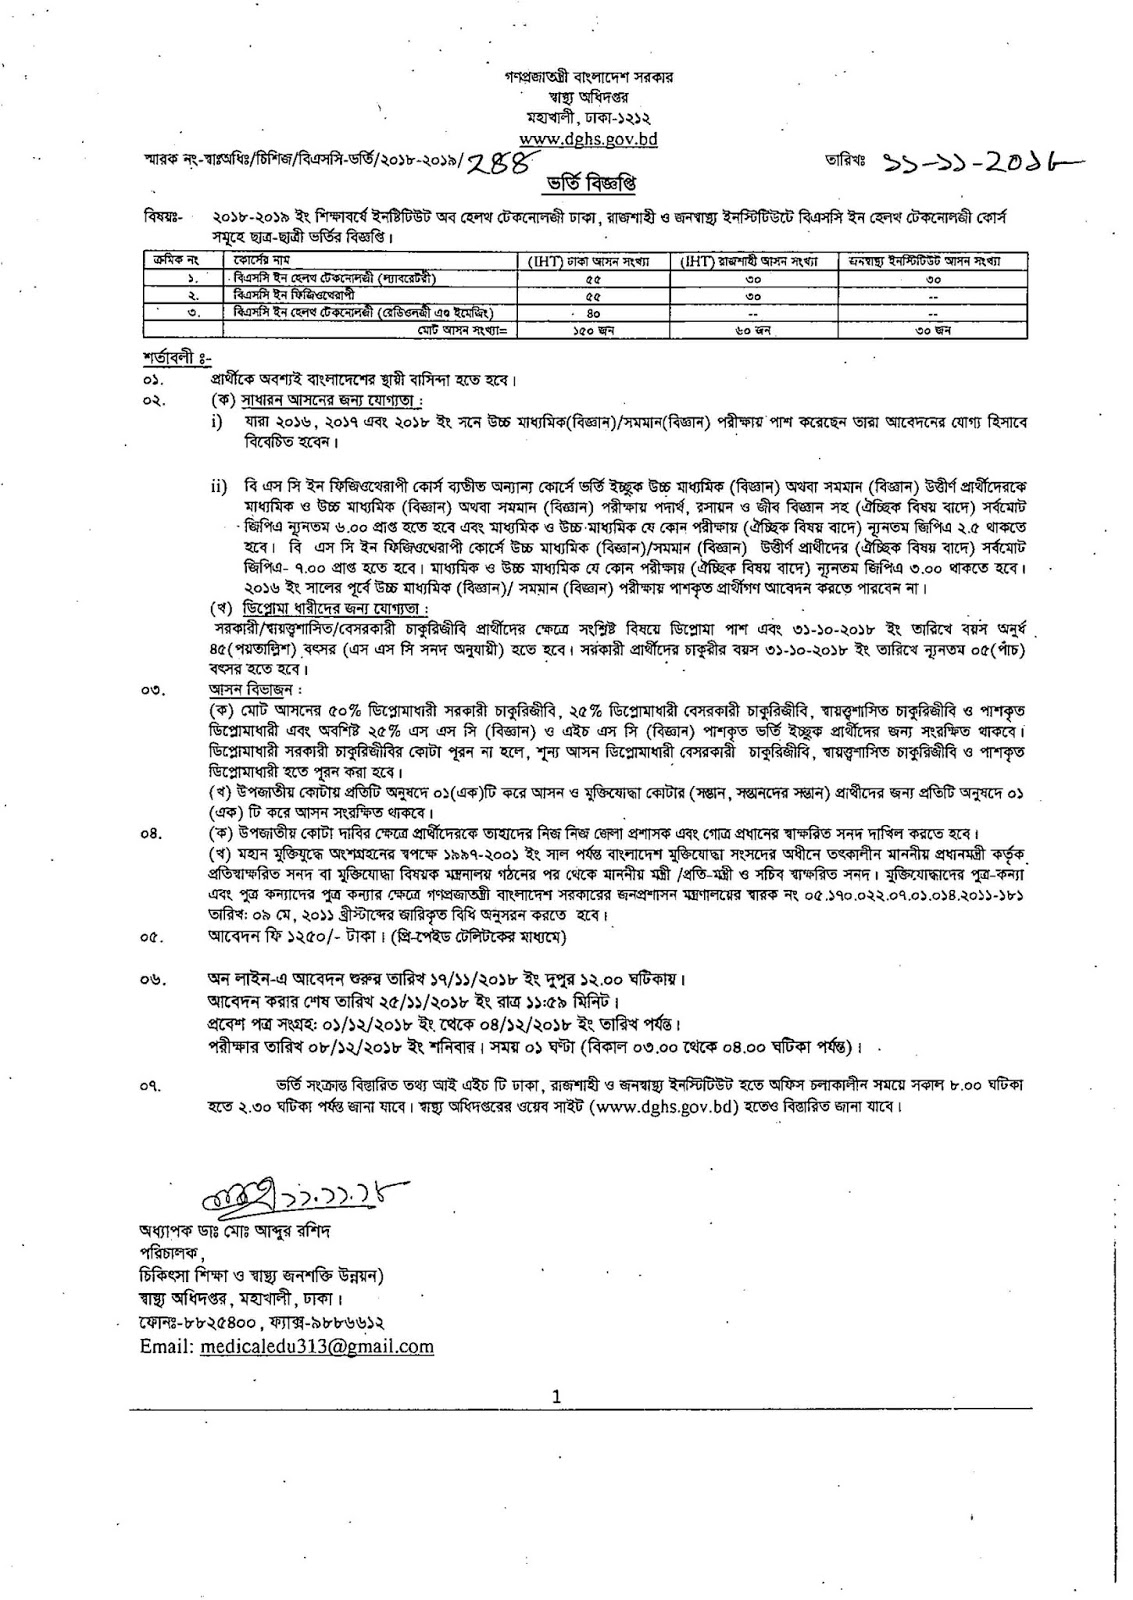 Institute of Health Technology Admission Test Circular 2018-2019